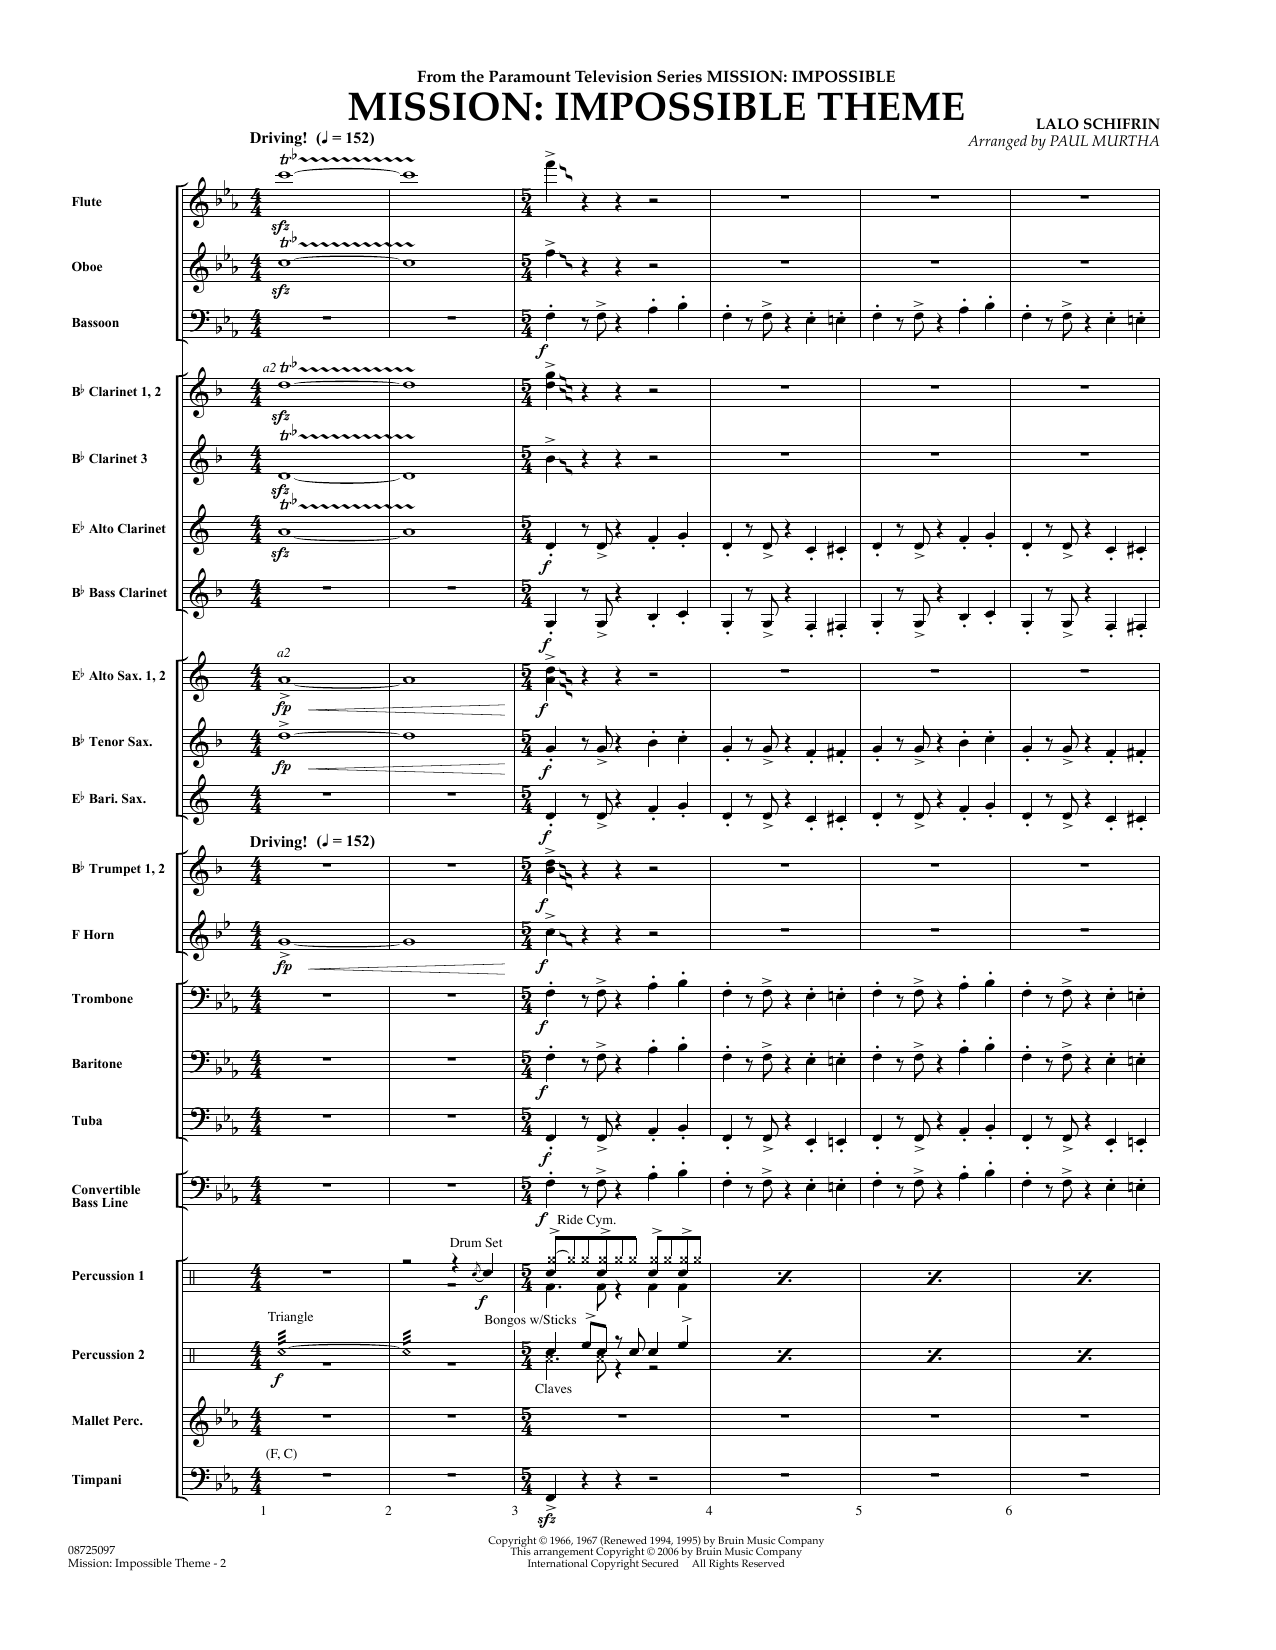 Mission: Impossible Theme (COMPLETE) sheet music for concert band by Paul Murtha